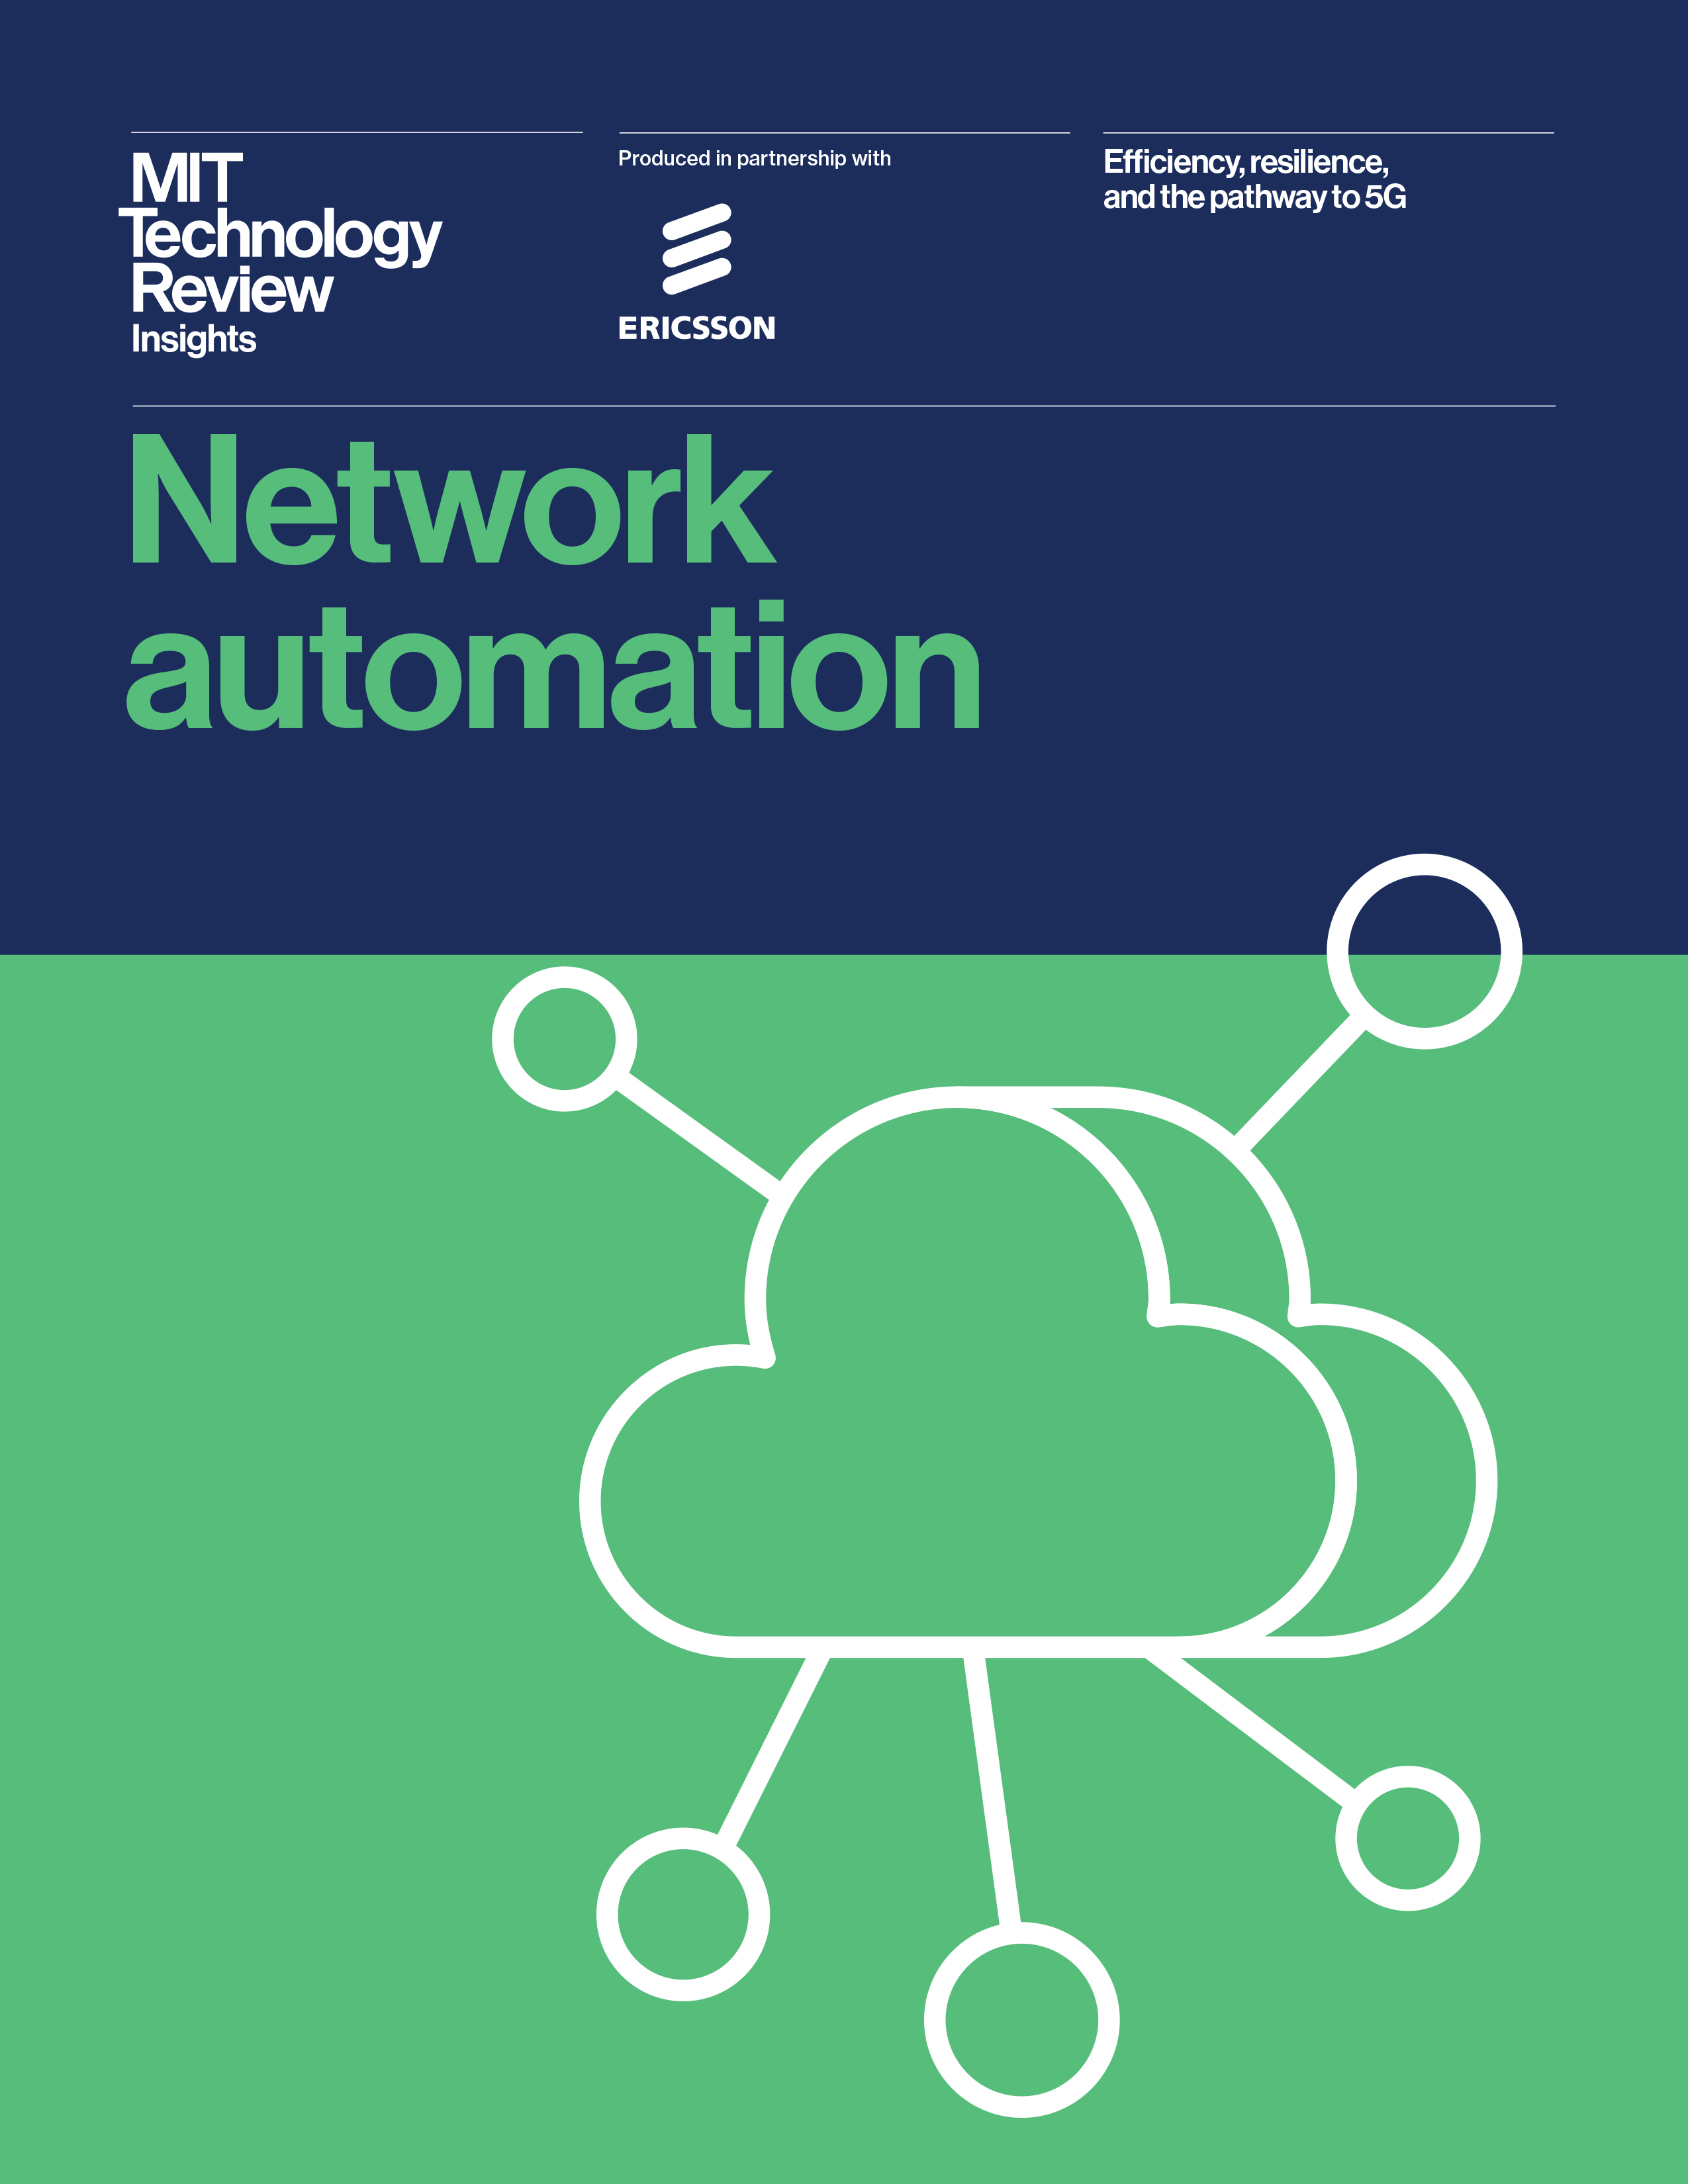 Network automation: Efficiency, resilience, and the pathway to 5G